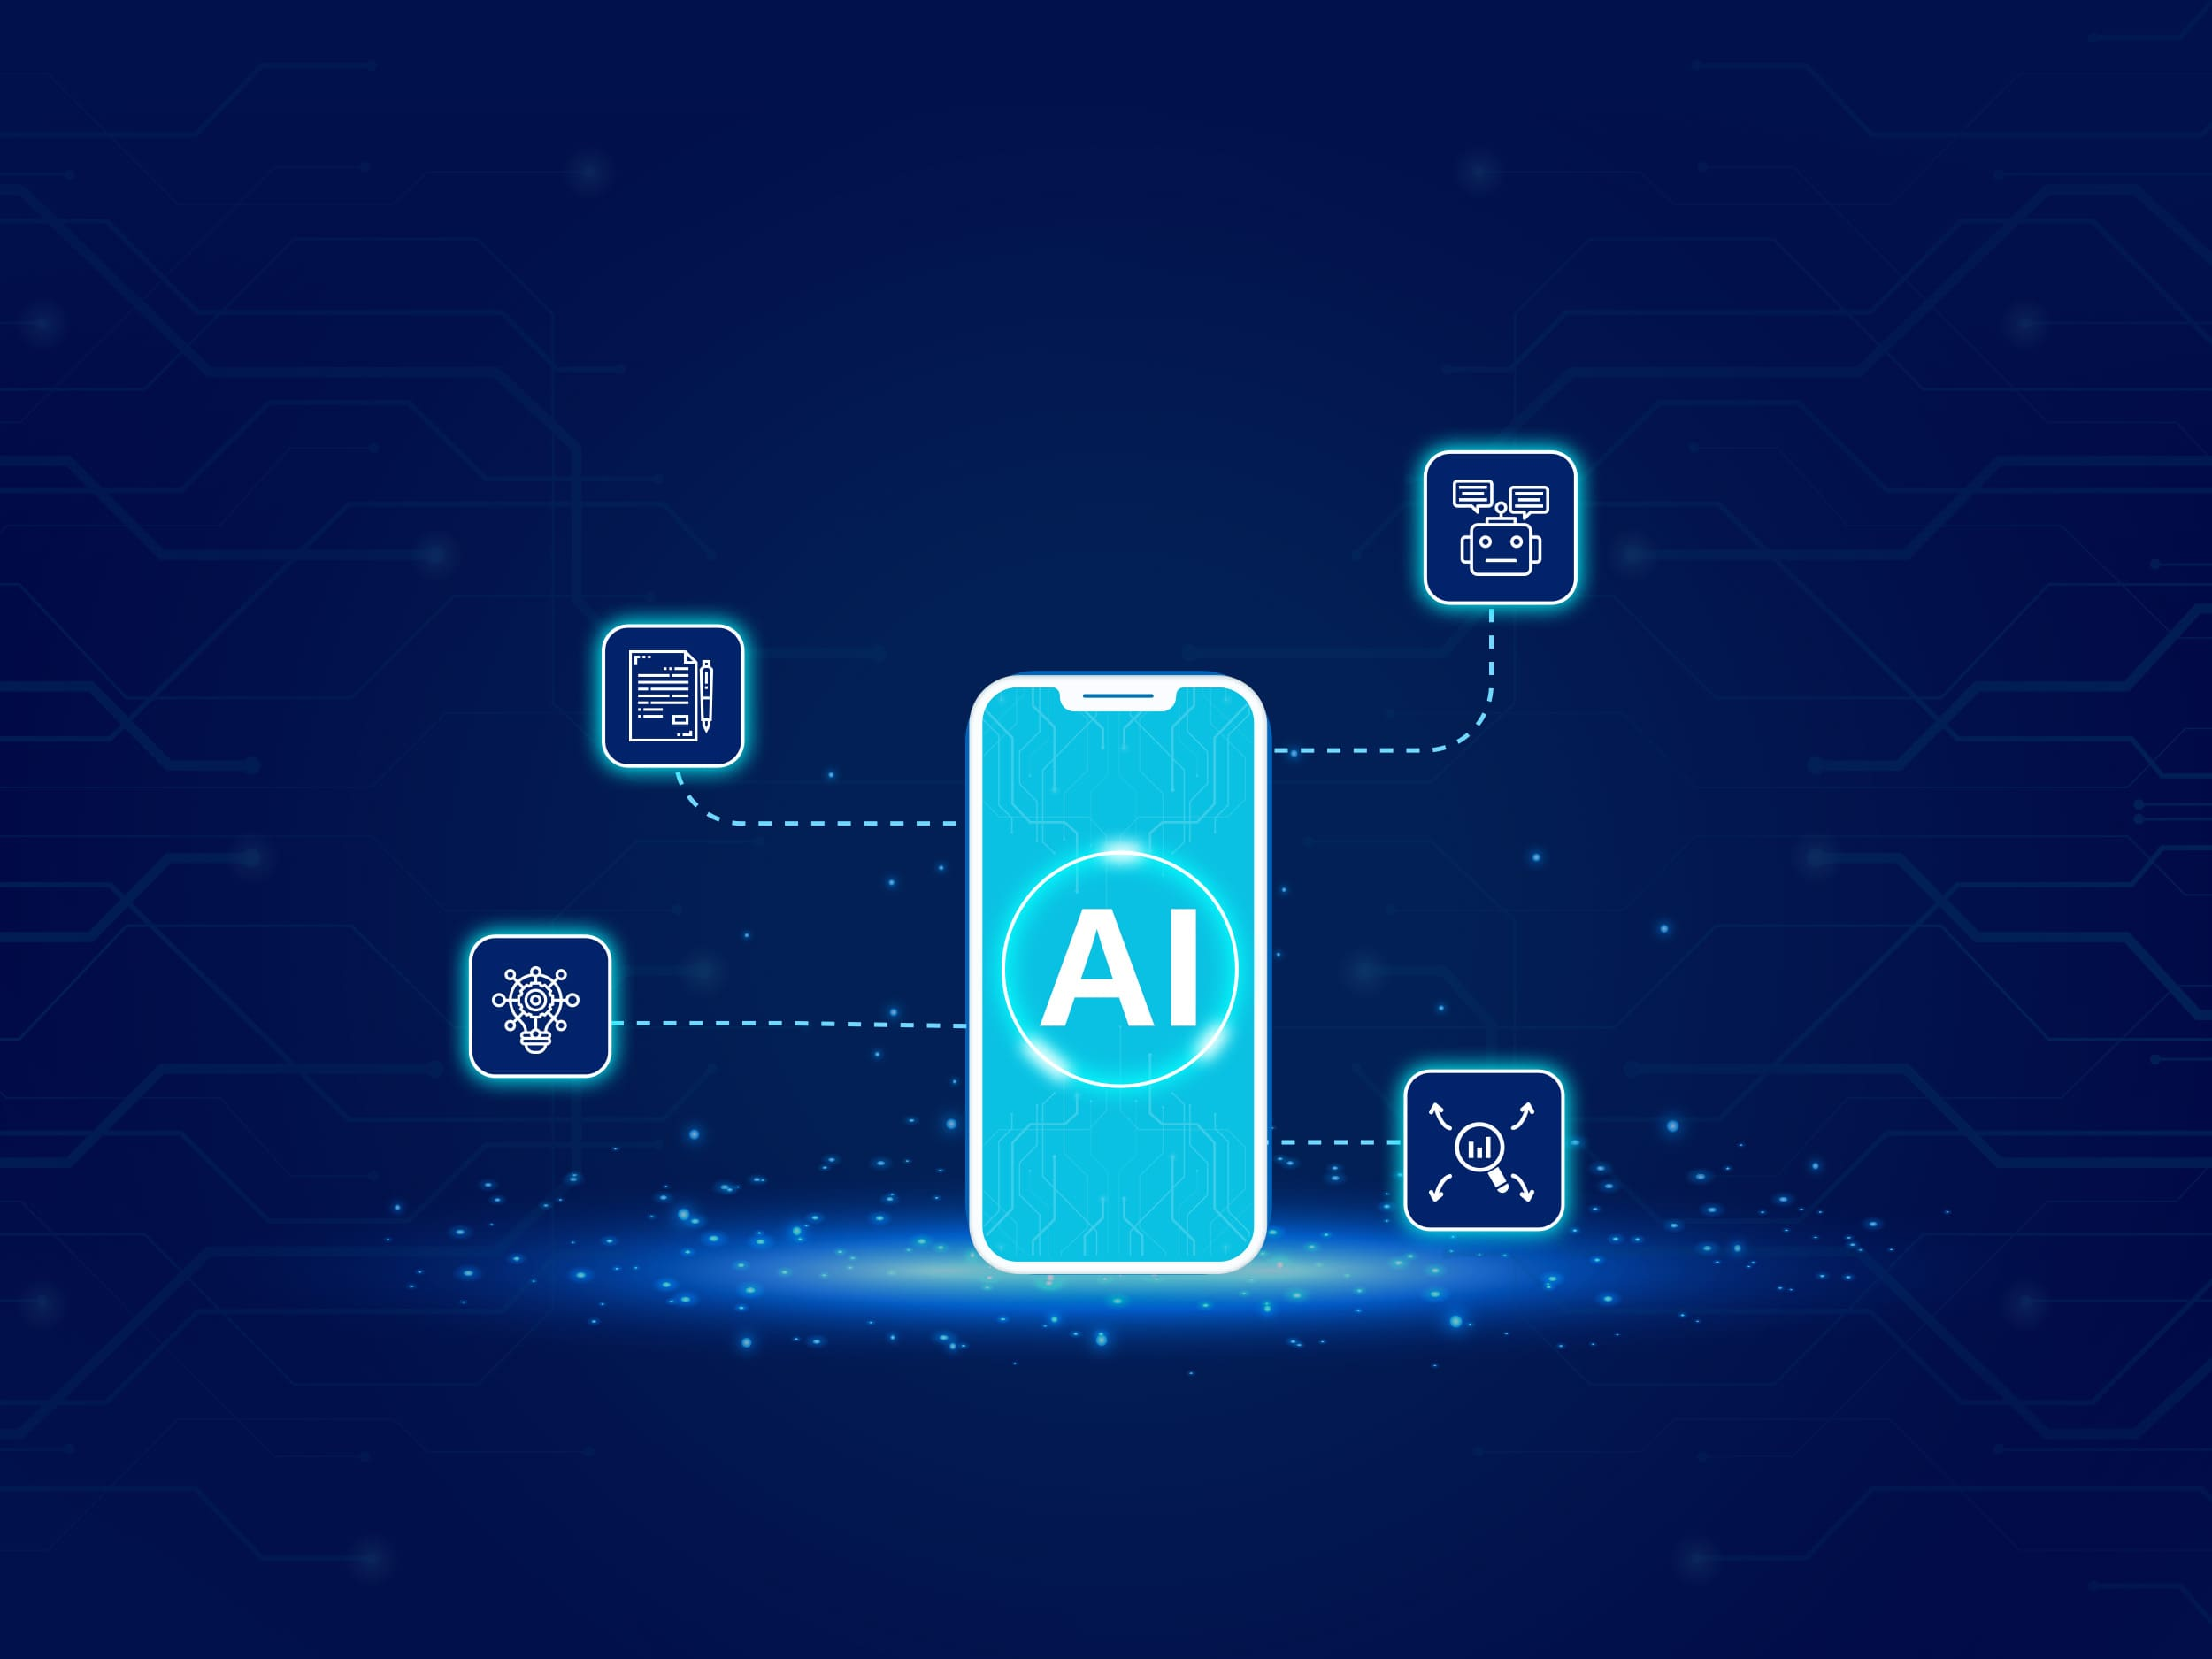 Mobile App Marketing with Artificial Intelligence (AI)